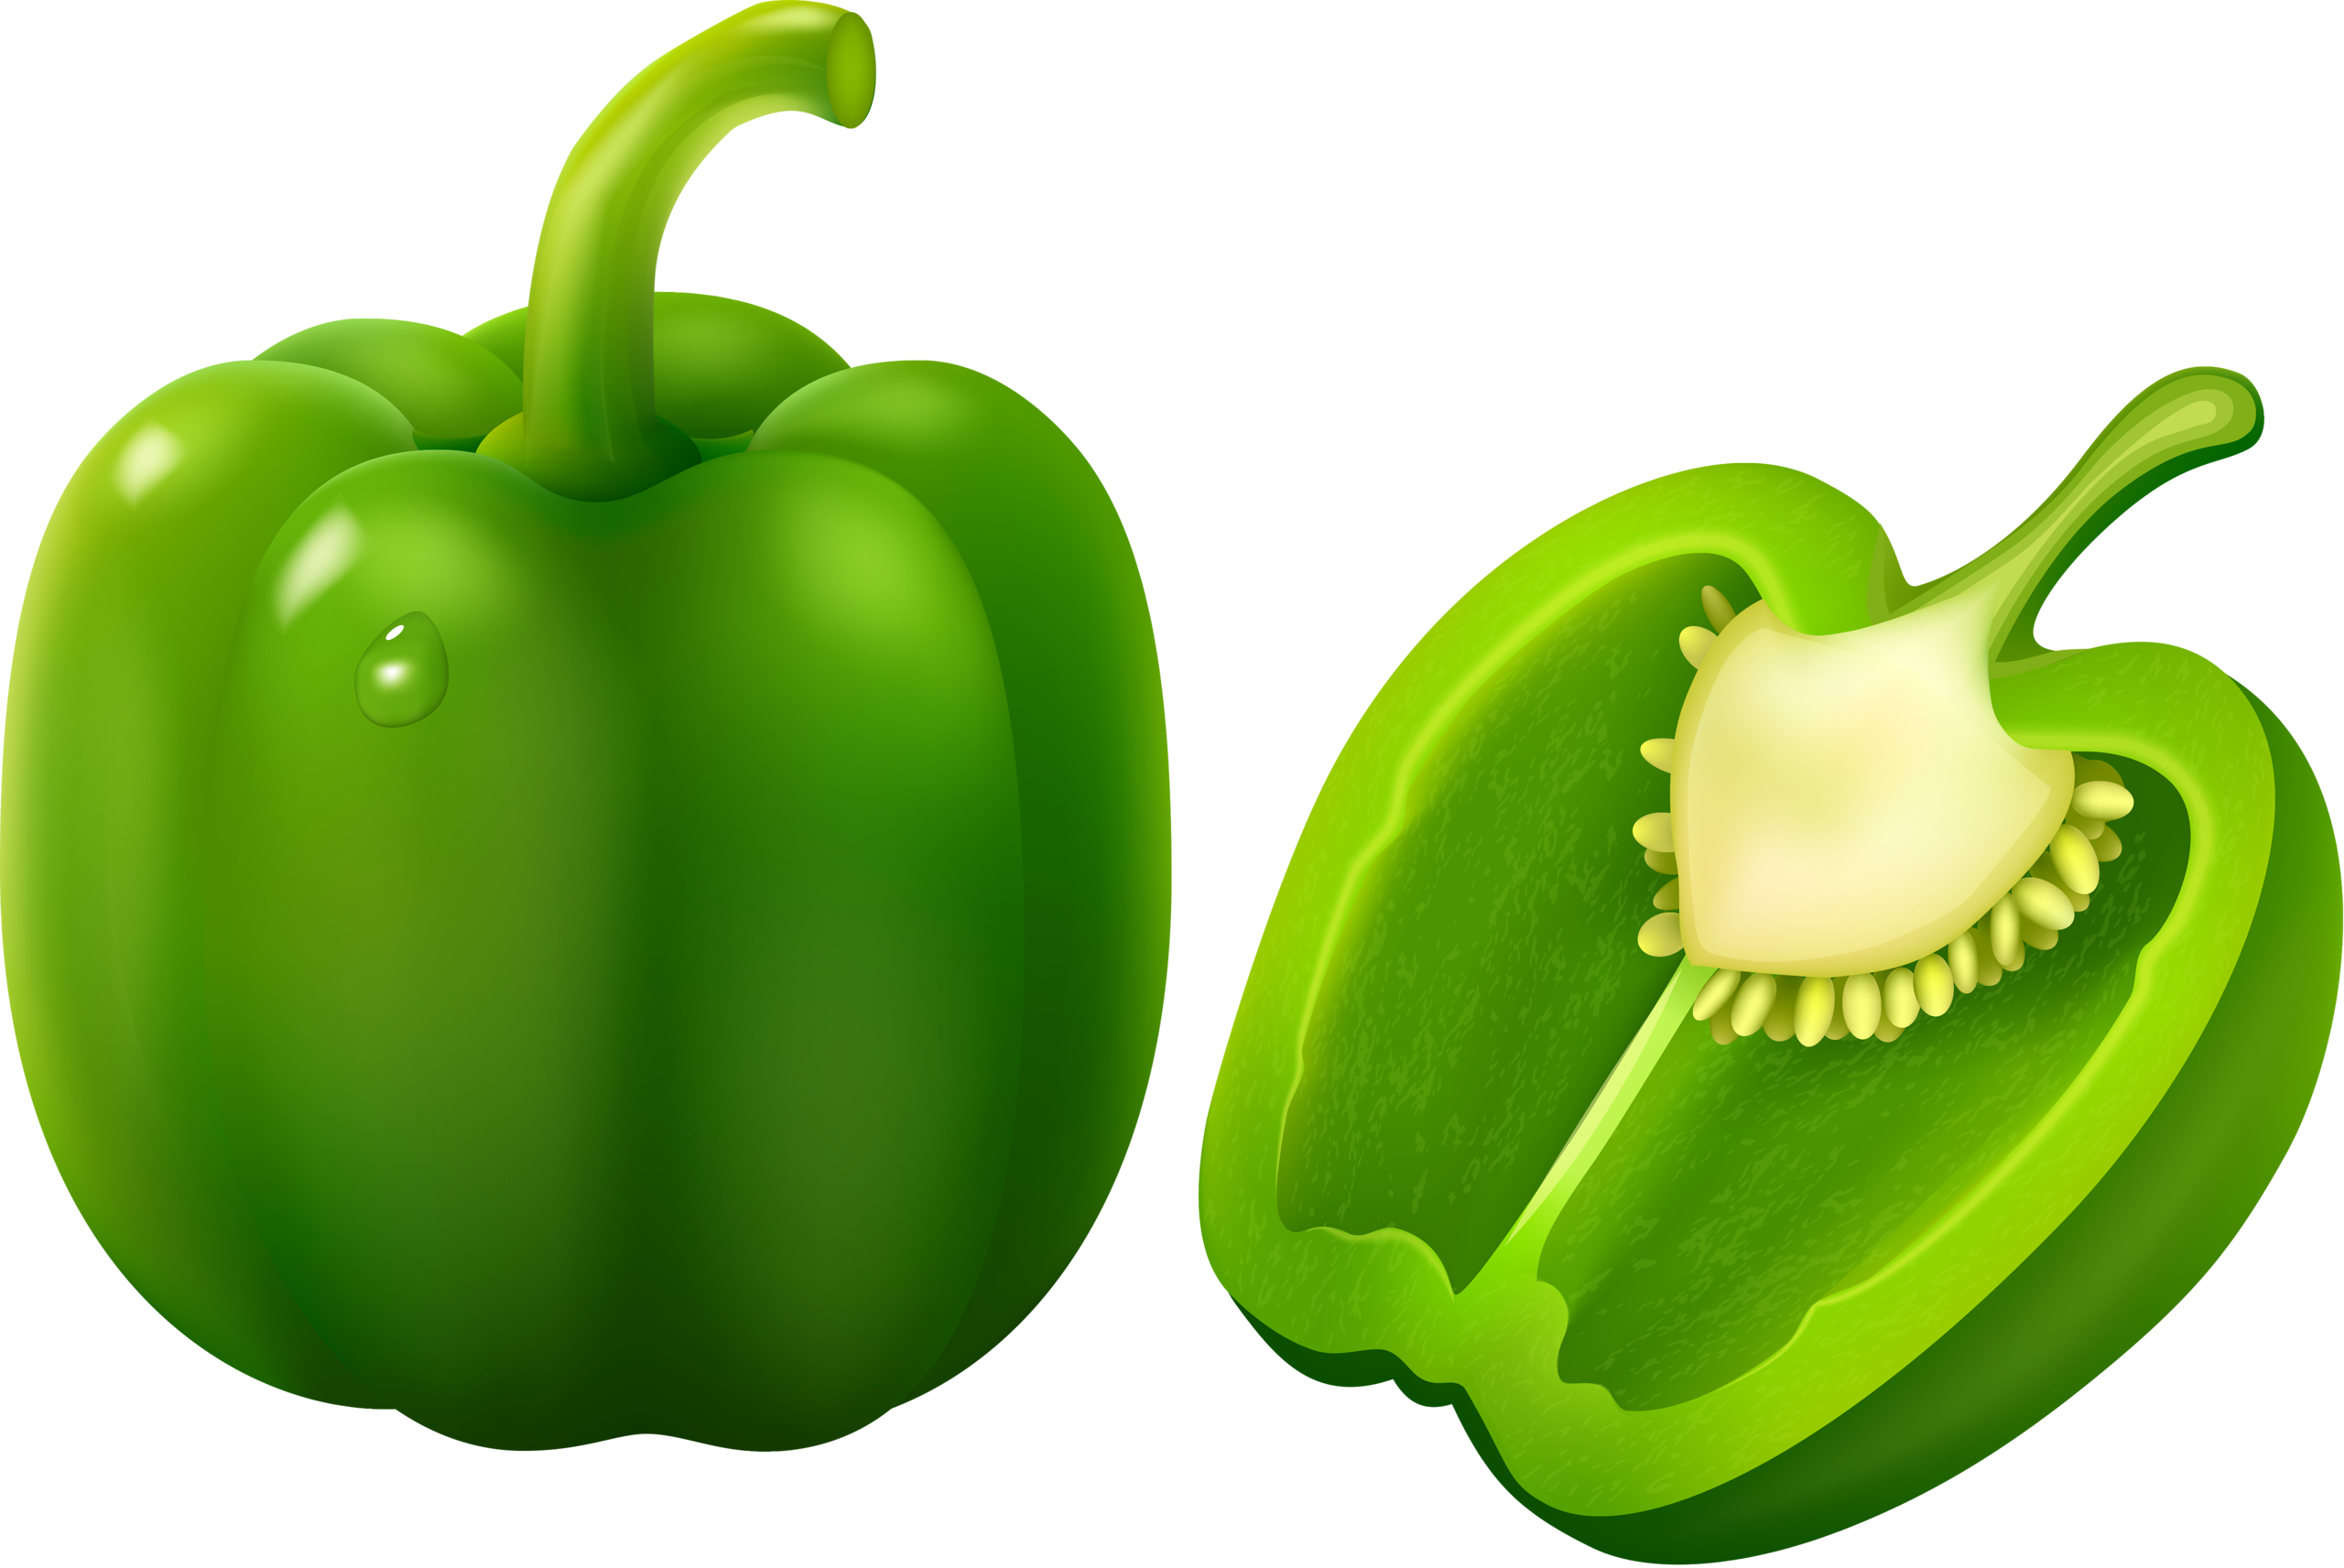 Lettuce clipart cute. Green bell pepper bulgarian